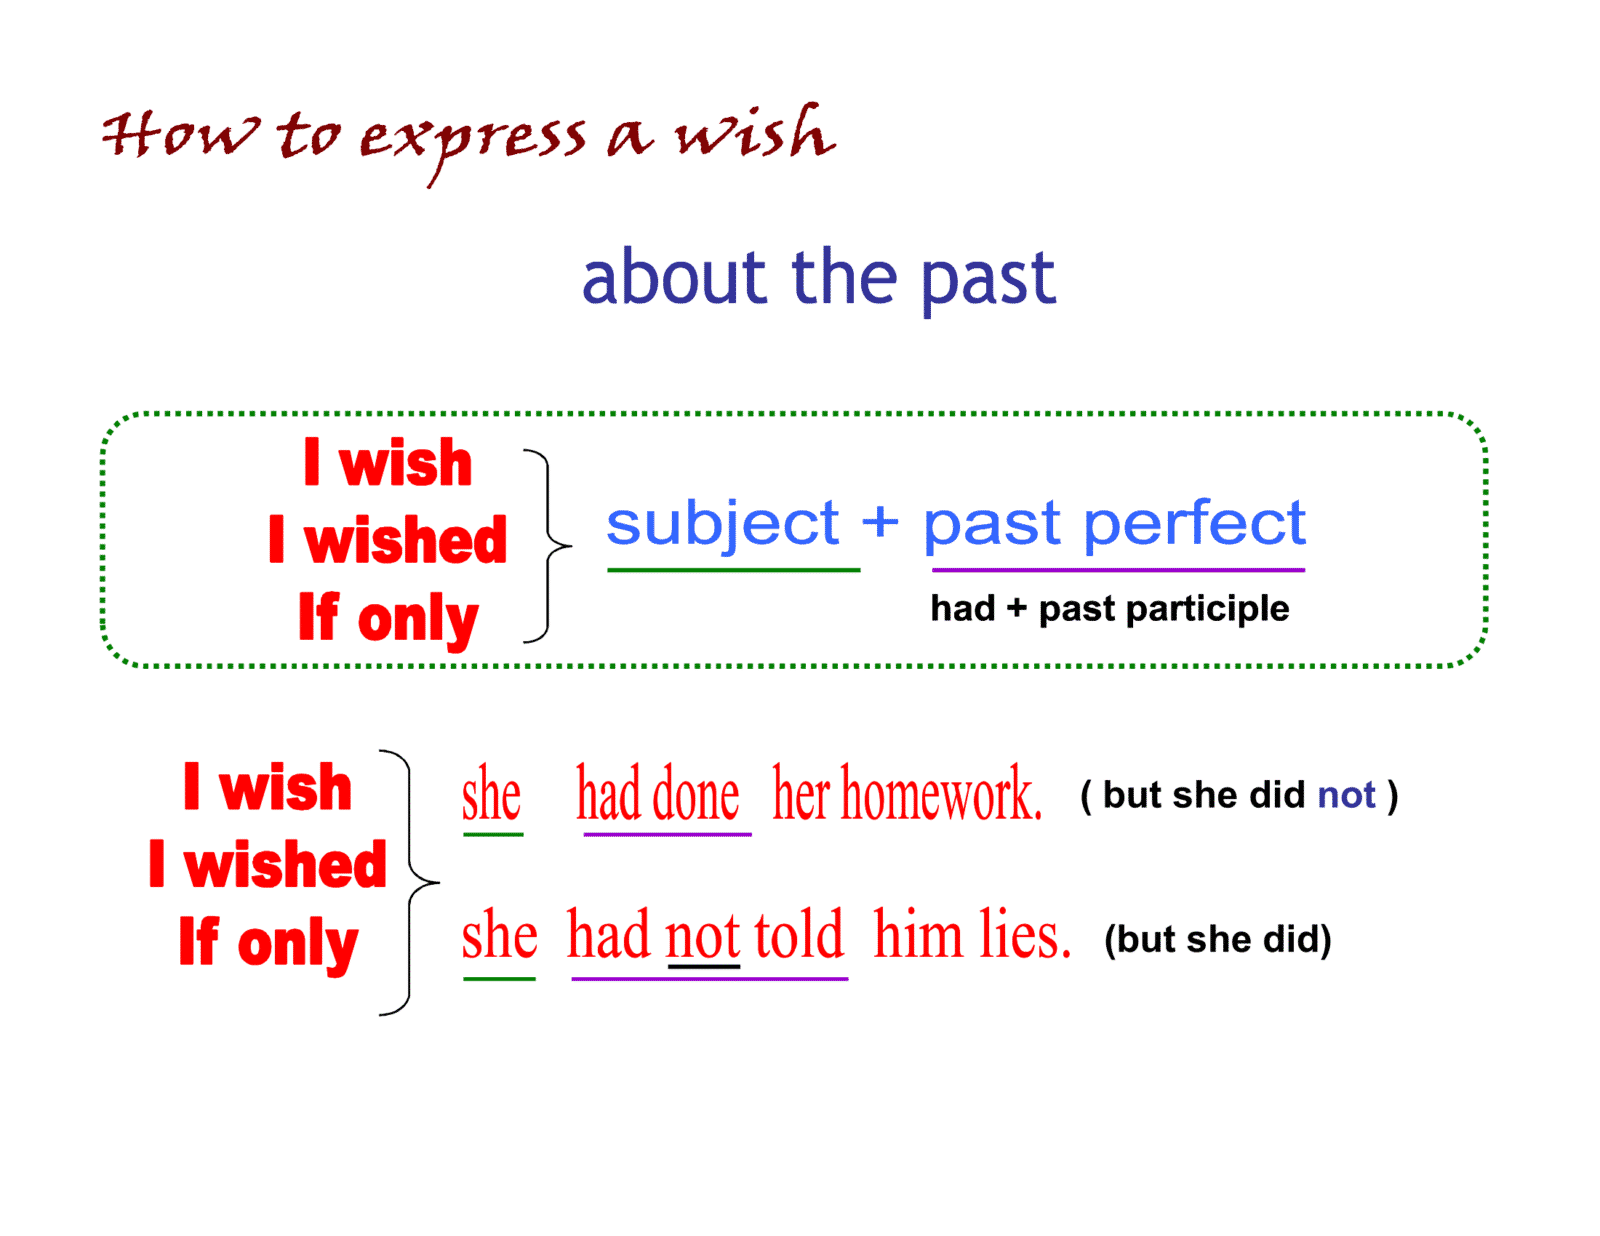 Wishes about the Past